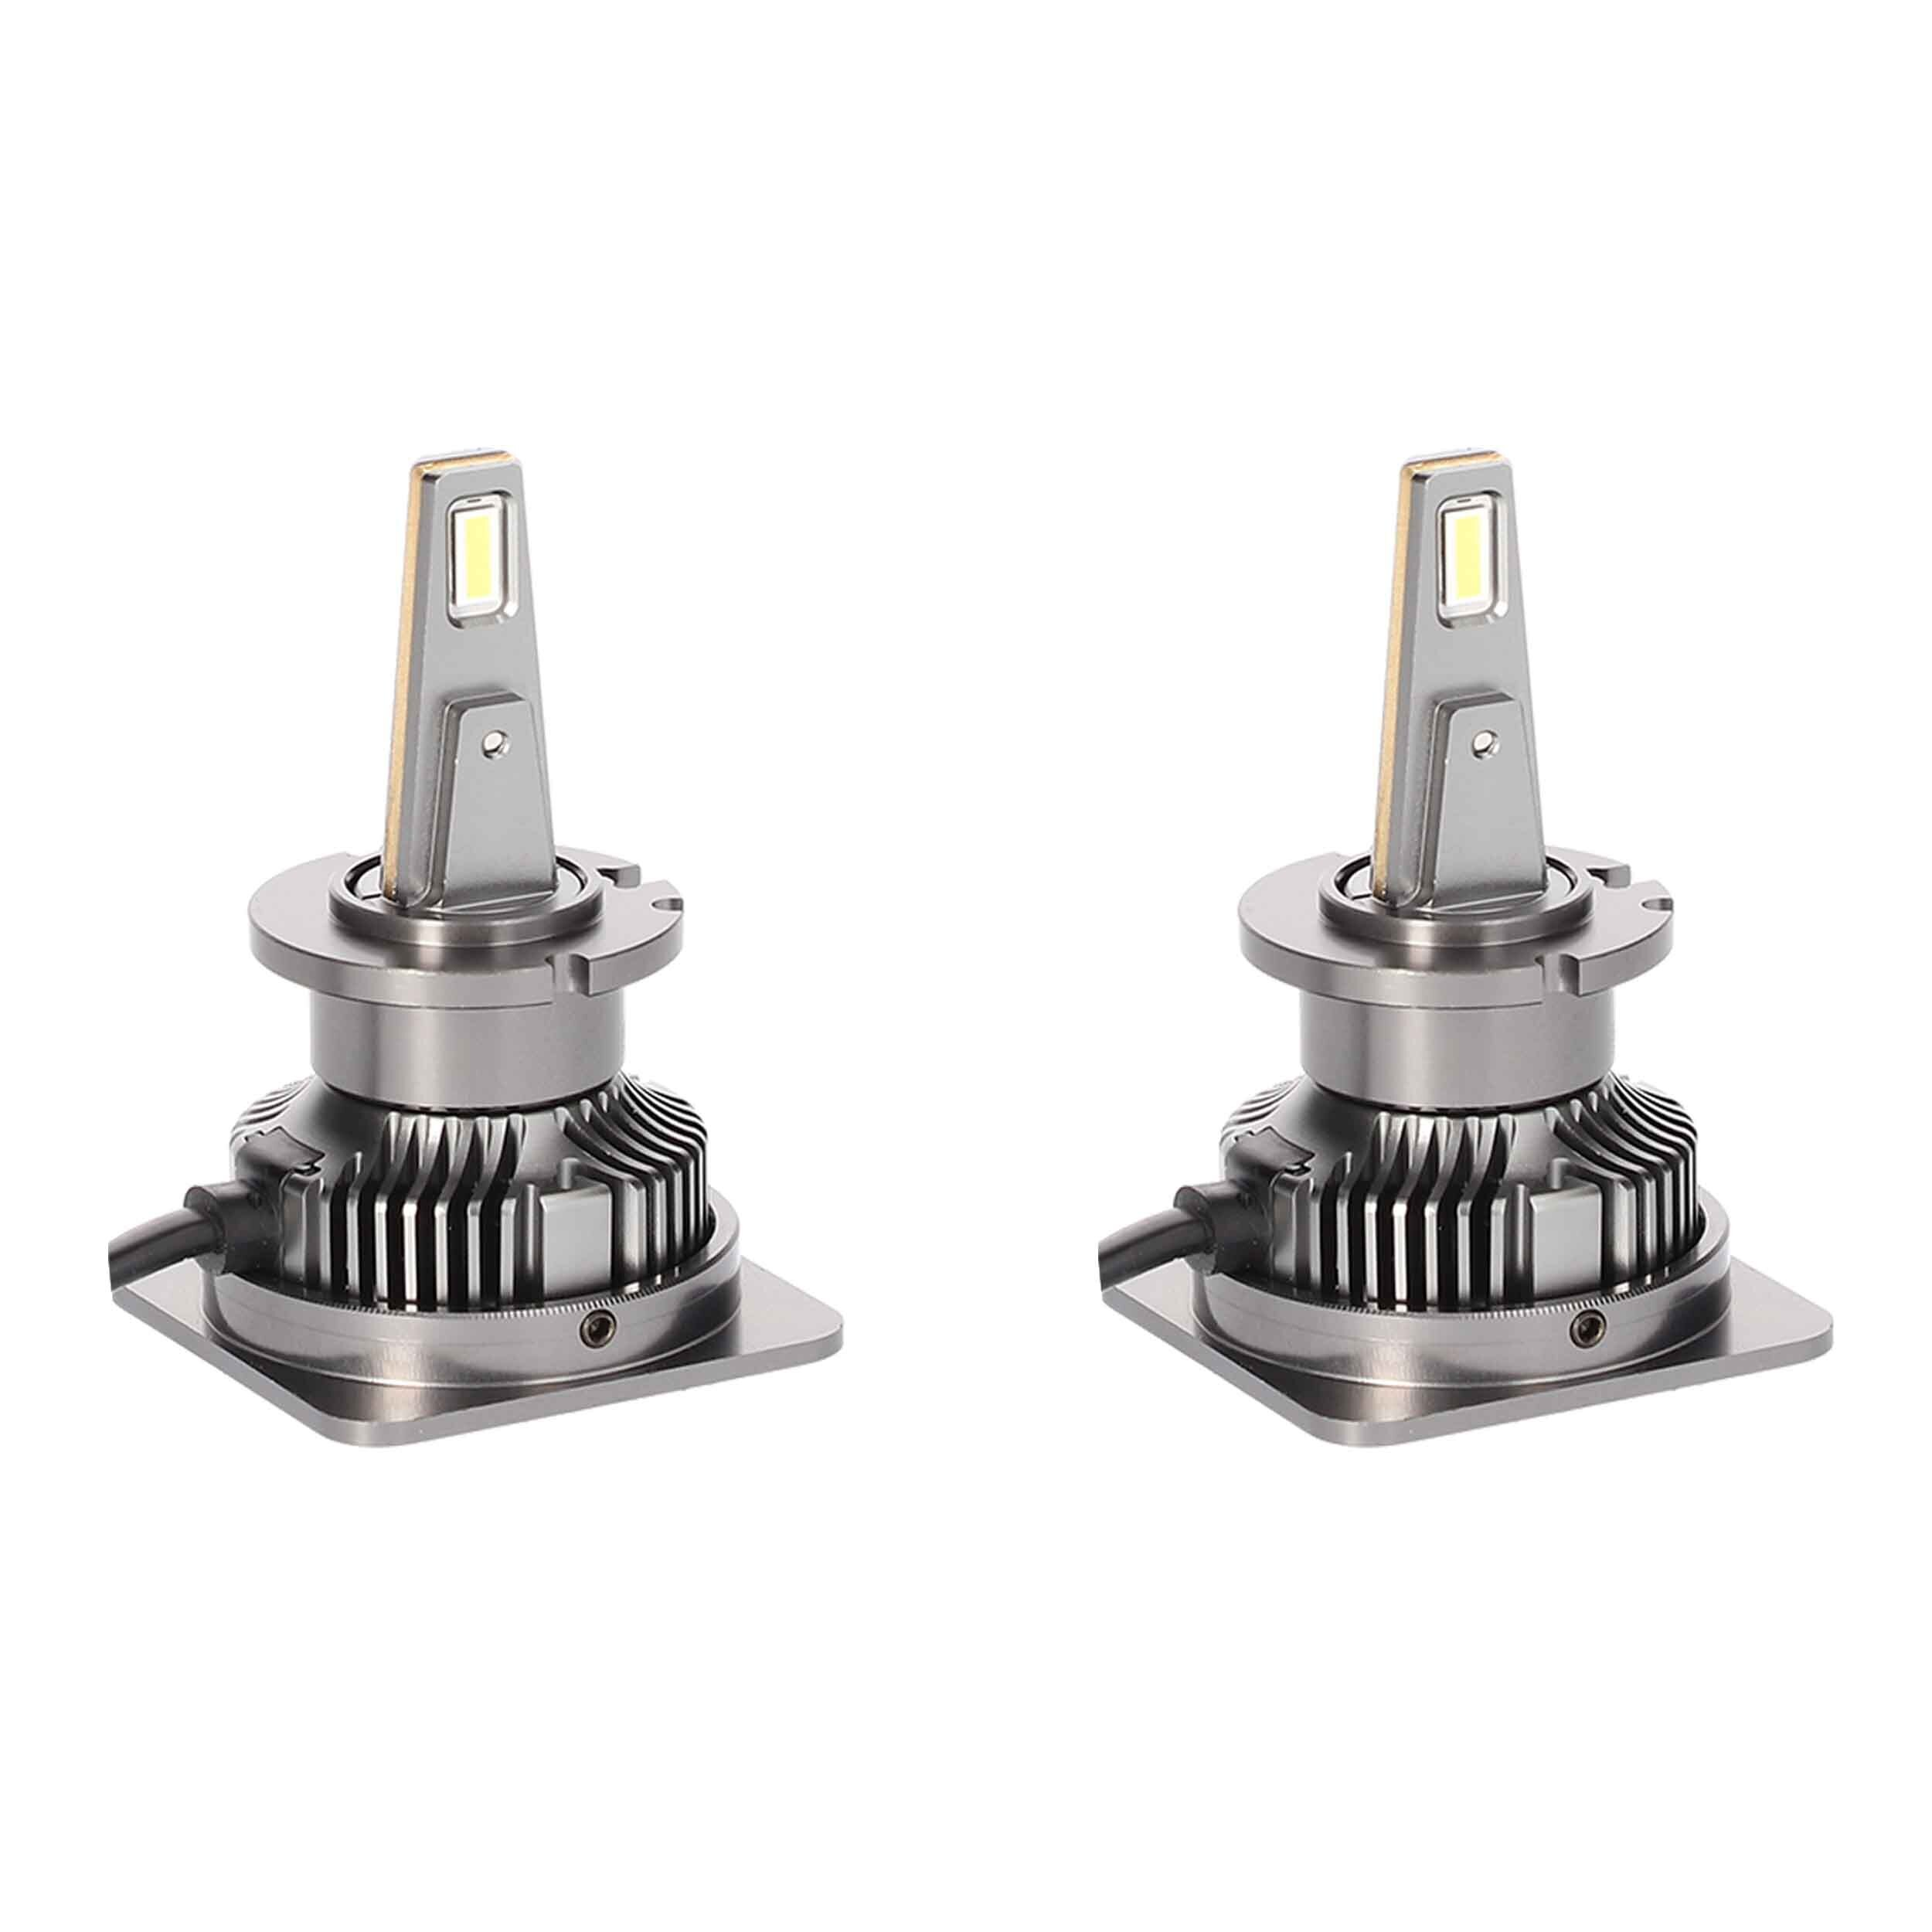 Pro Series LED Bulbs - Fits D2S, D2R